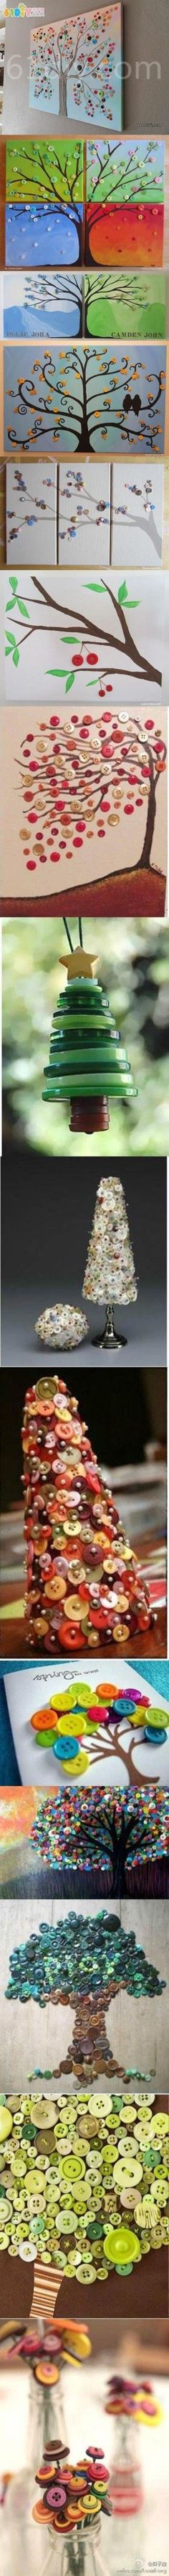 Creative Button Crafts - Trees 2